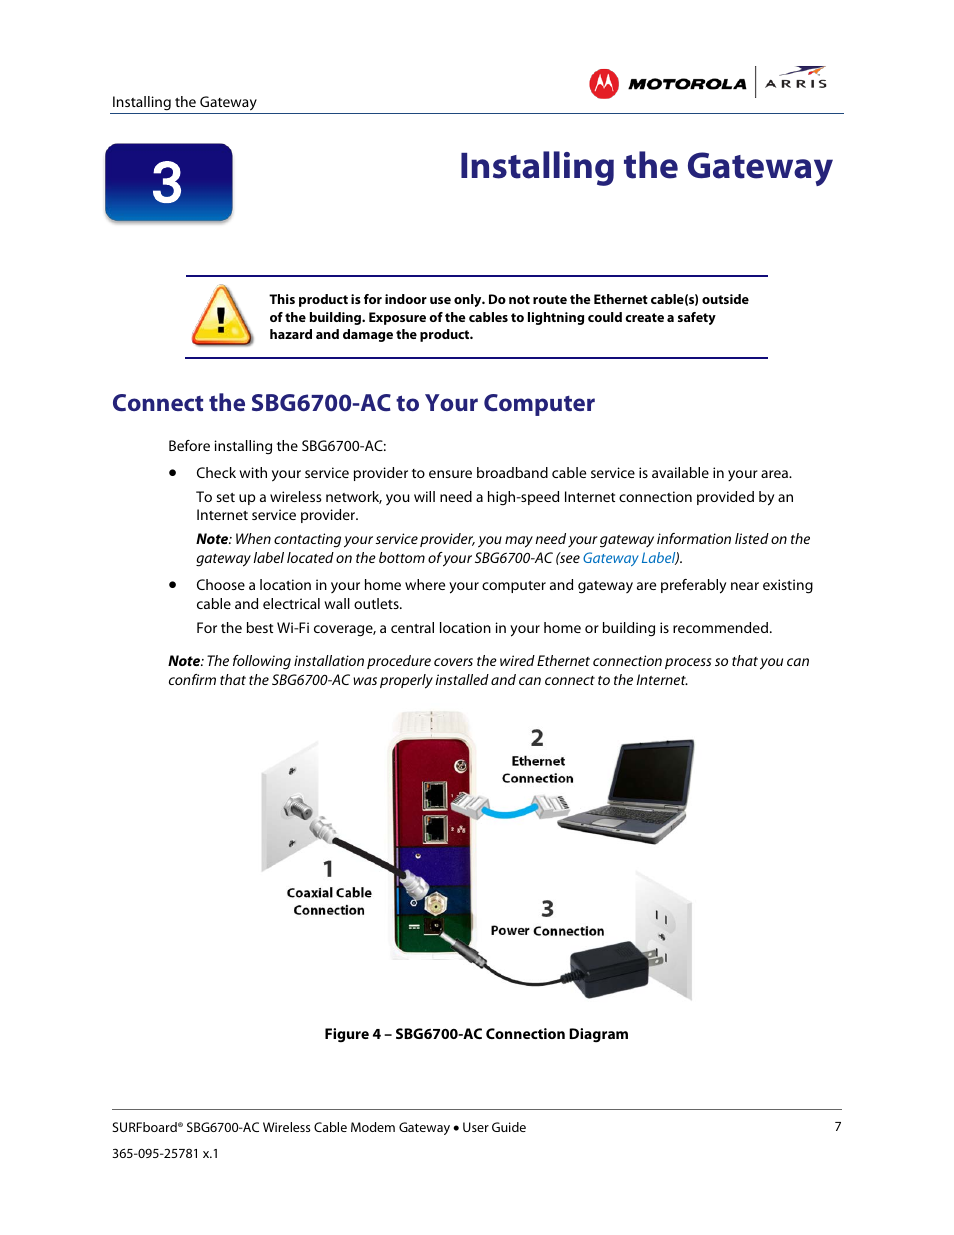 Installing The Gateway Connect Sbg6700 Ac To Your Computer Internet Cable Wiring Diagram Figure 3 Sample Label Arris User Guide Manual Page 18